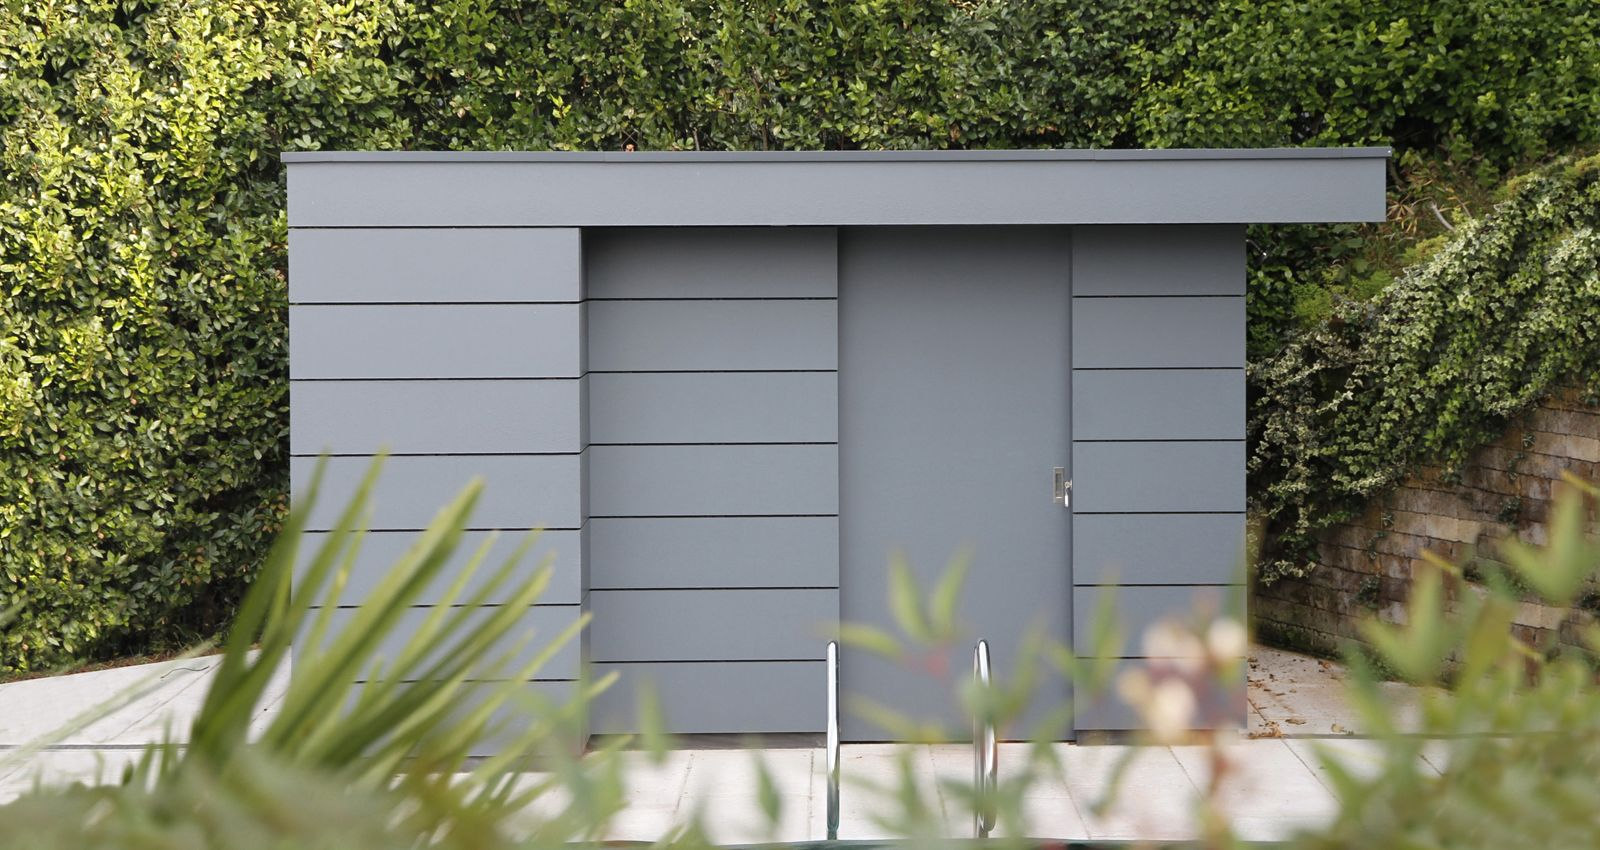 Garden shed modern design grey hpl planks new project bavarian lakes pinterest - Gartenhaus modern metall ...